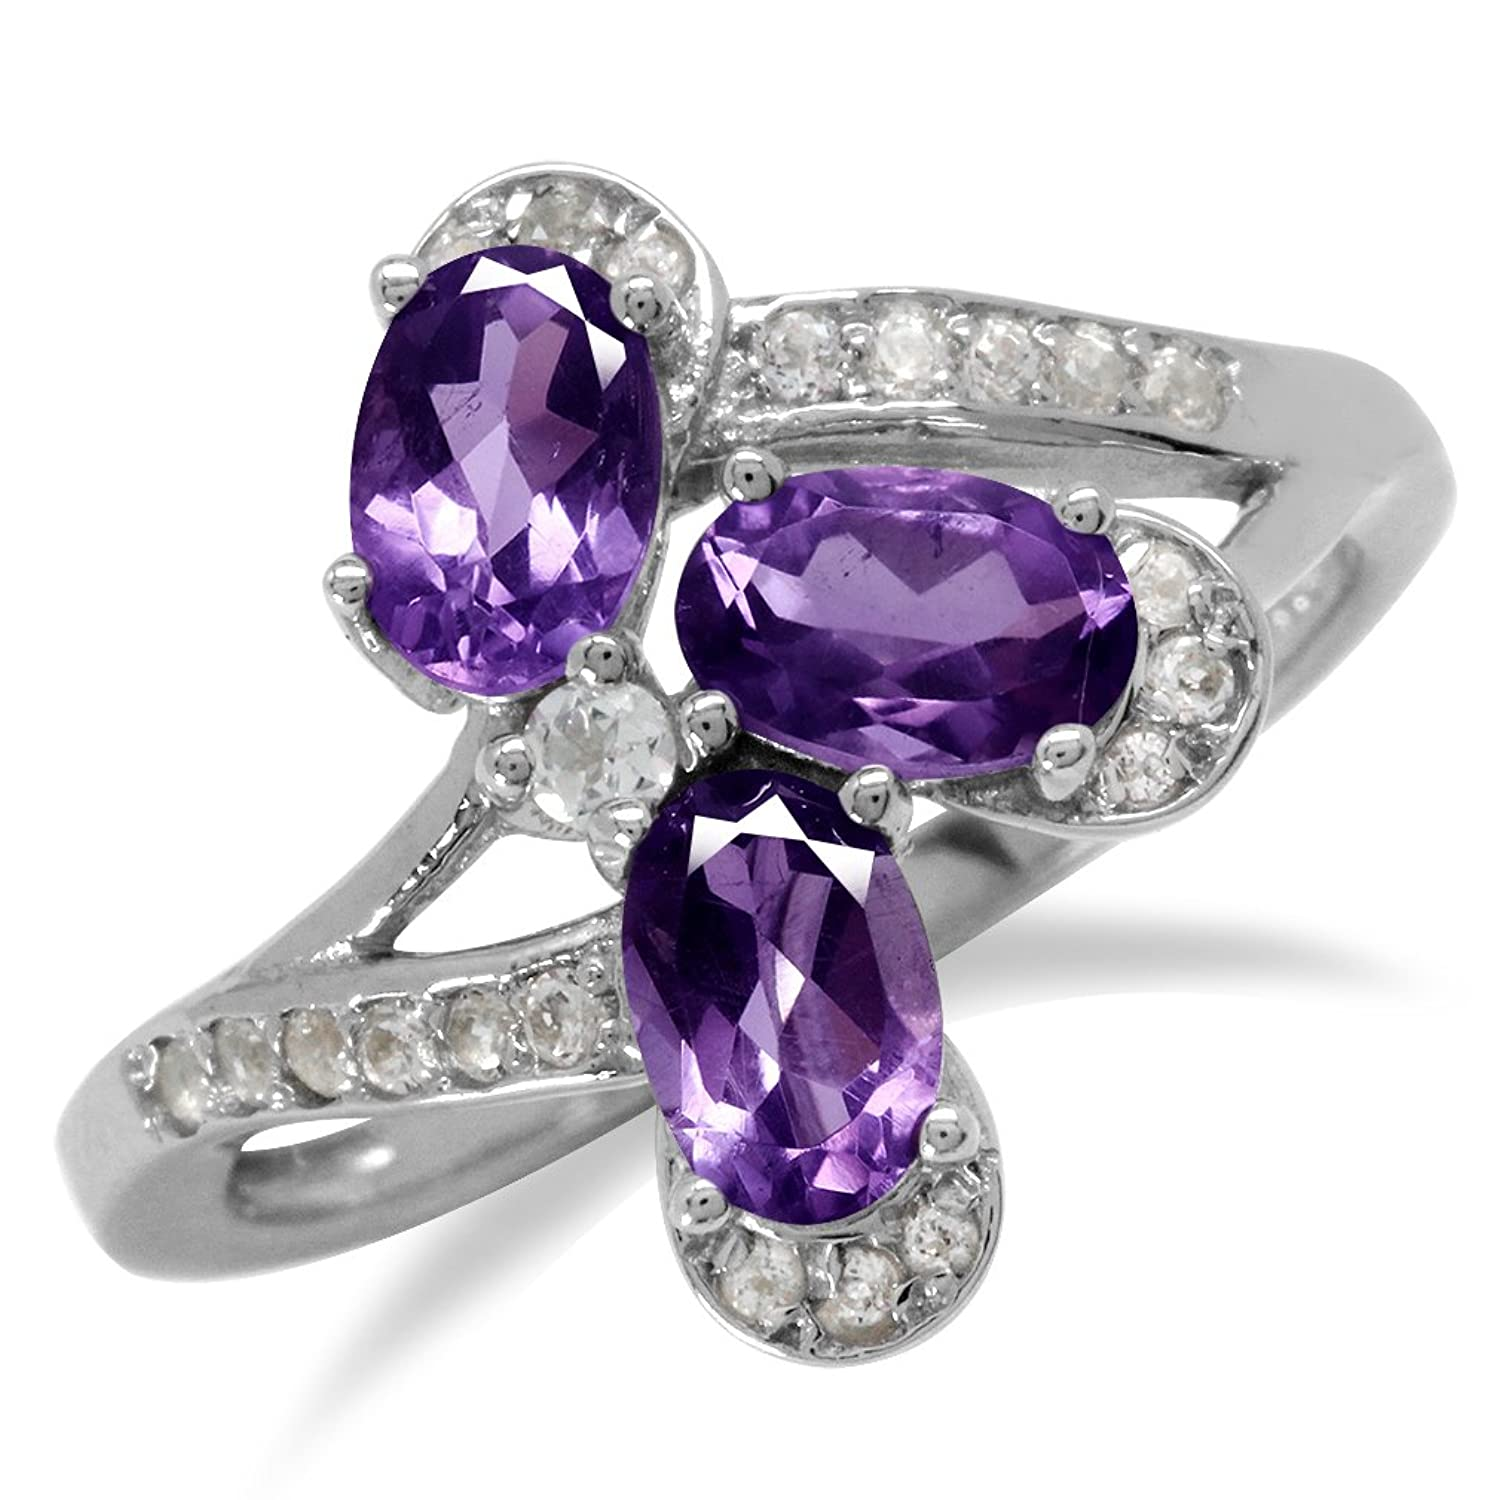 1.17ct. Natural Amethyst White Gold Plated 925 Sterling Silver Flower Ring